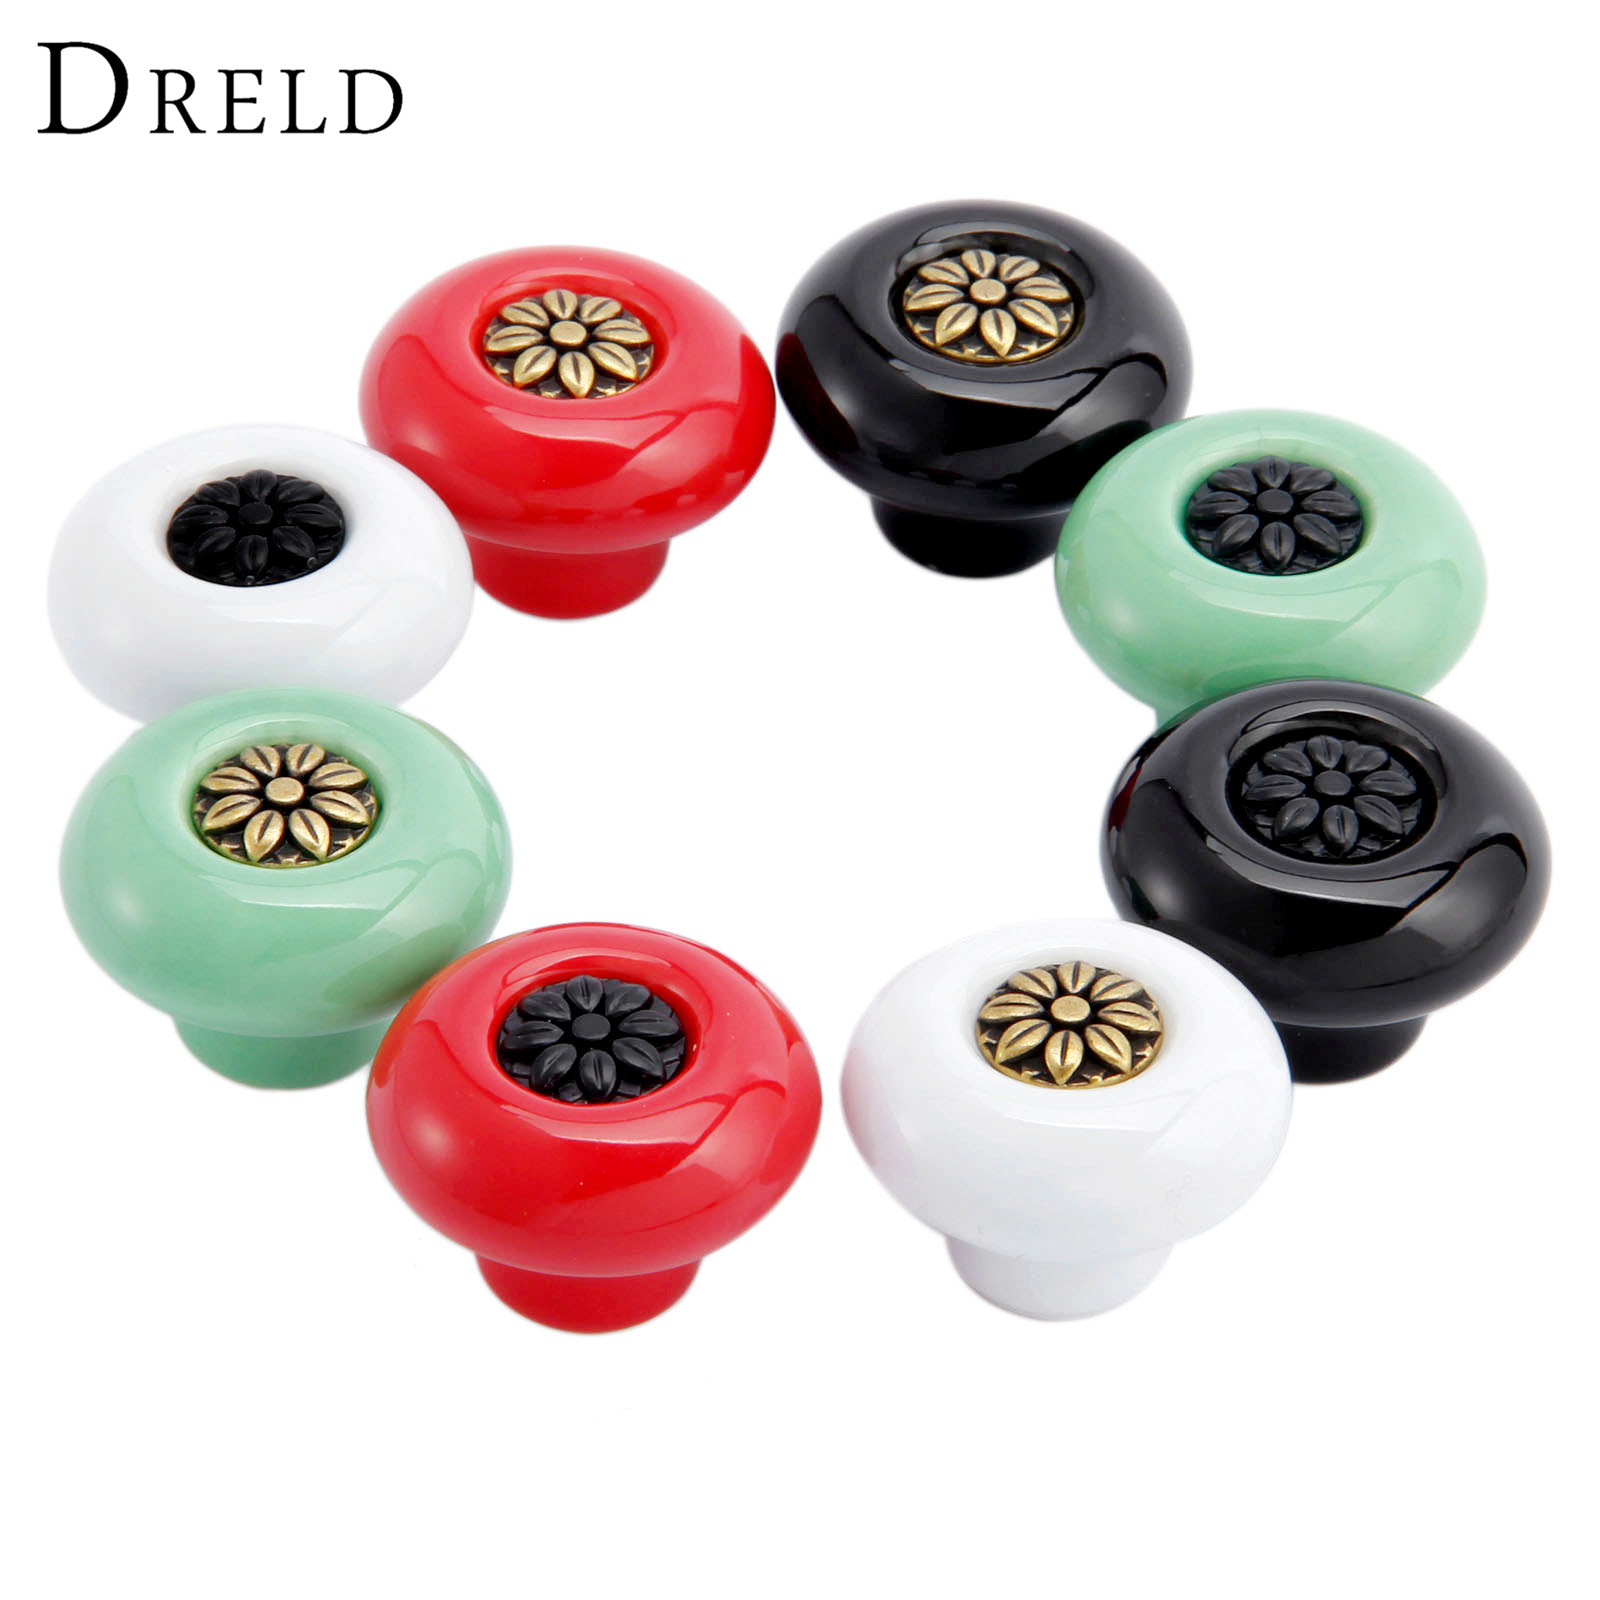 DRELD 8Pcs Furniture Handle Ceramic Door Knob Cupboard Drawer Cabinet Knobs and Handles Kitchen Pull Handle Furniture Hardware 1pc furniture handles wardrobe door pull drawer handle kitchen cupboard handle cabinet knobs and handles decorative dolphin knob